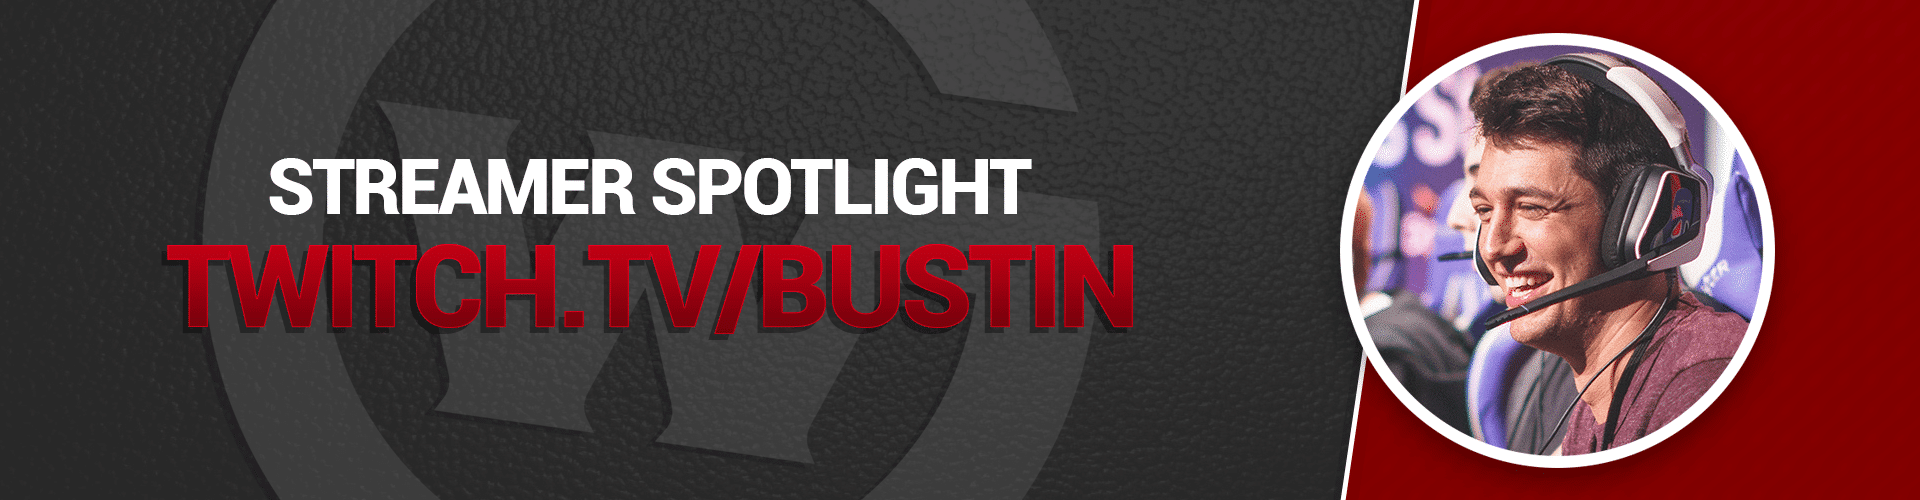 THIS WEEK'S STREAMER SPOTLIGHT FEATURES BUSTIN!!!